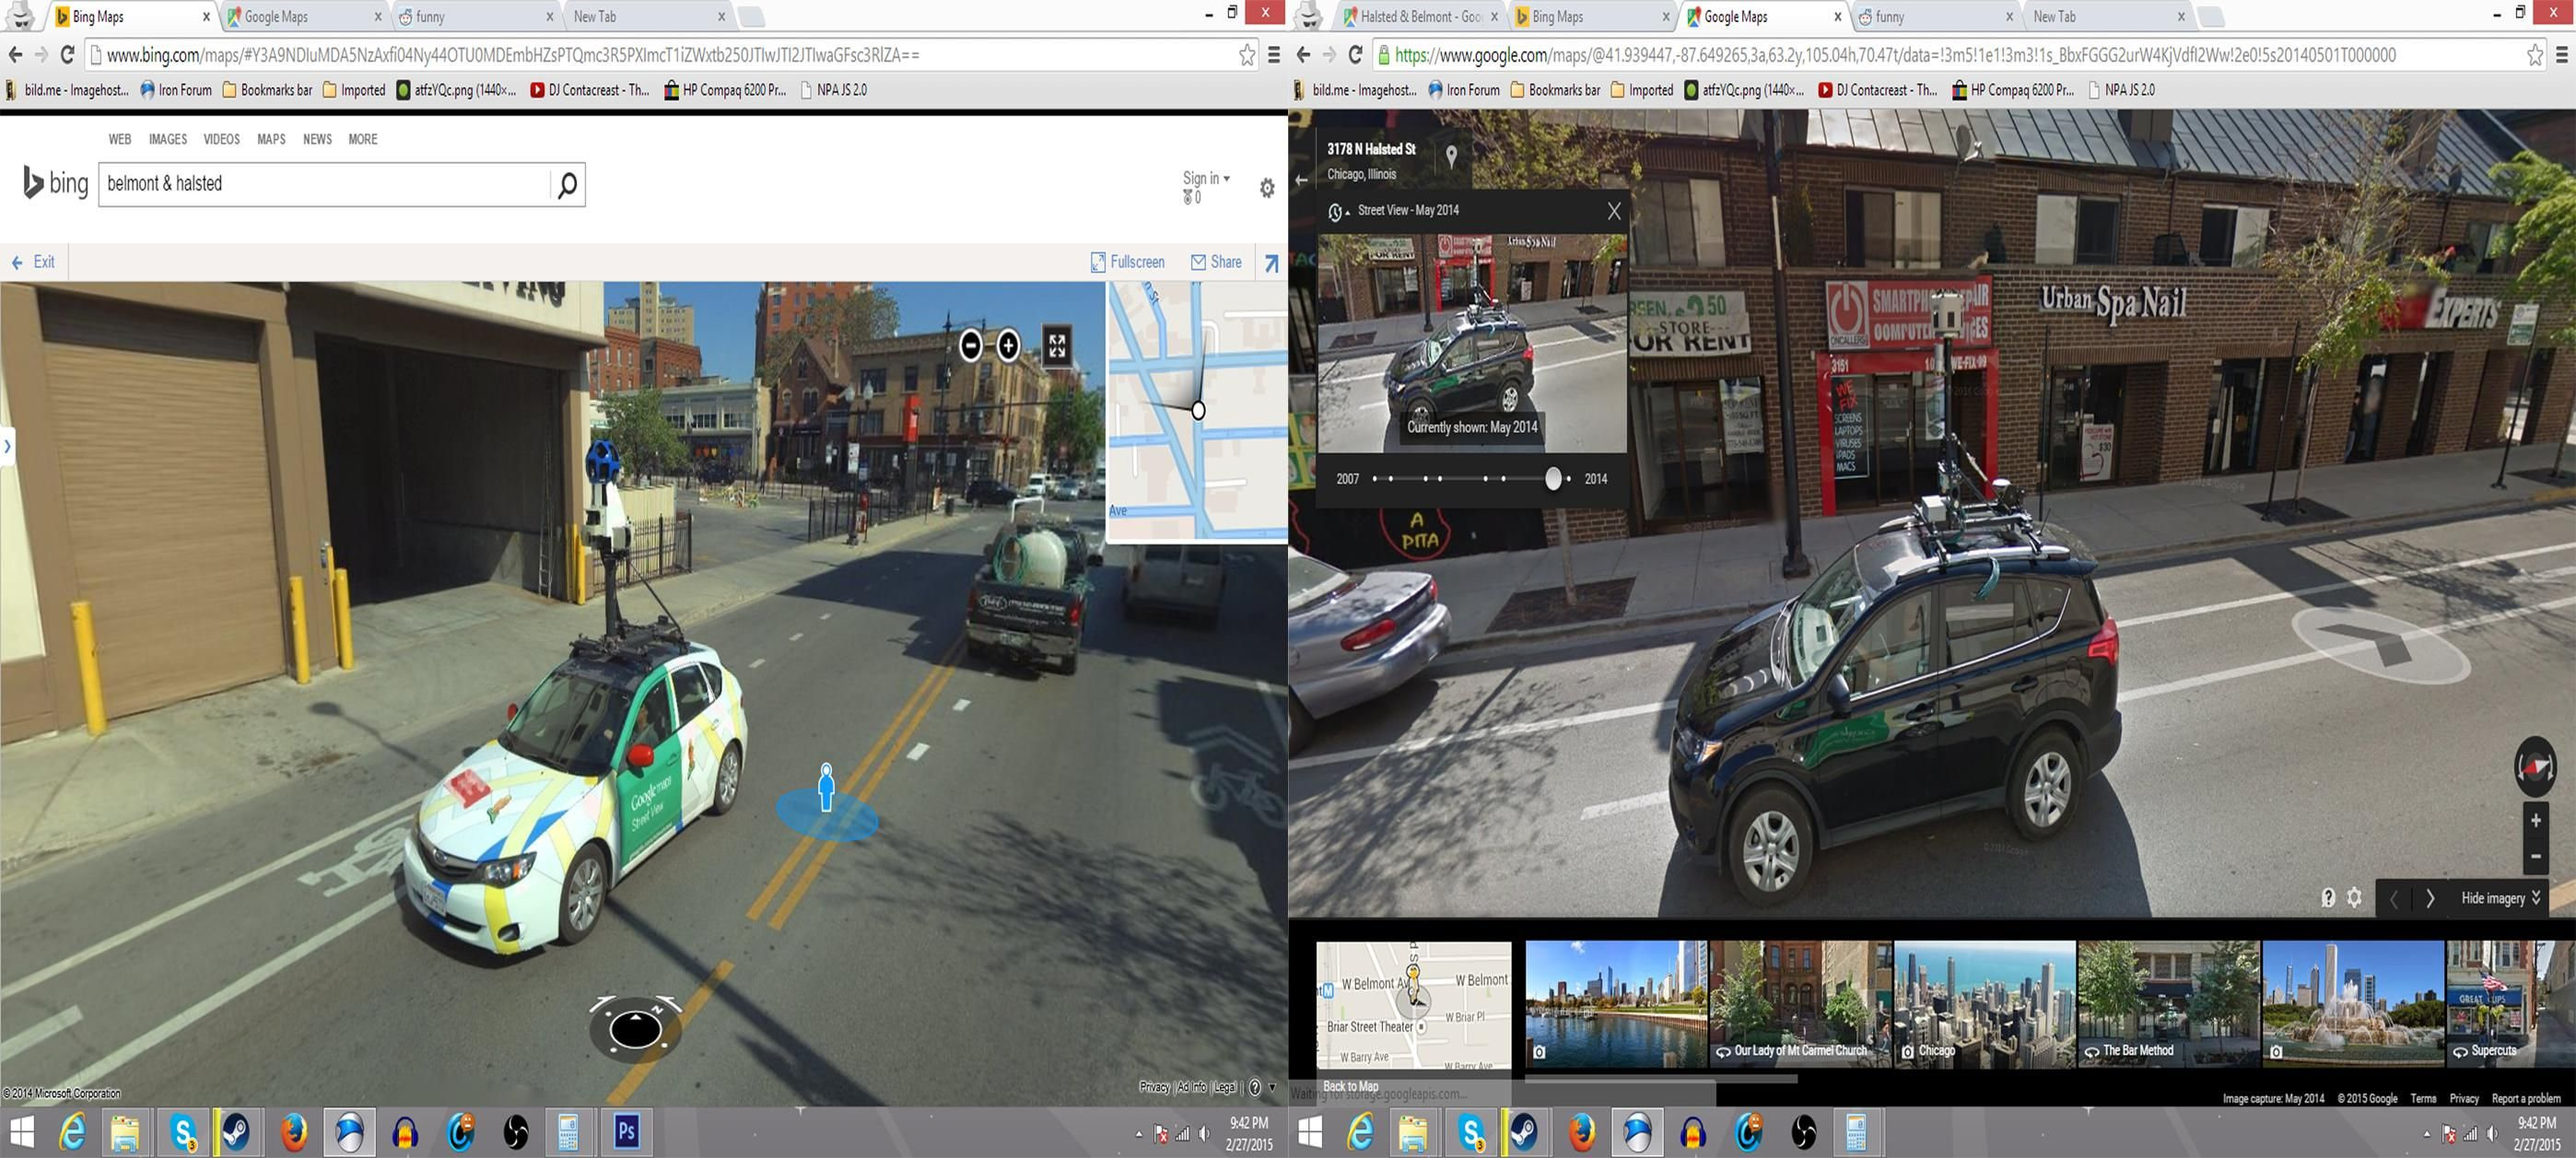 Google Street View and Bing Maps Streetside View collide